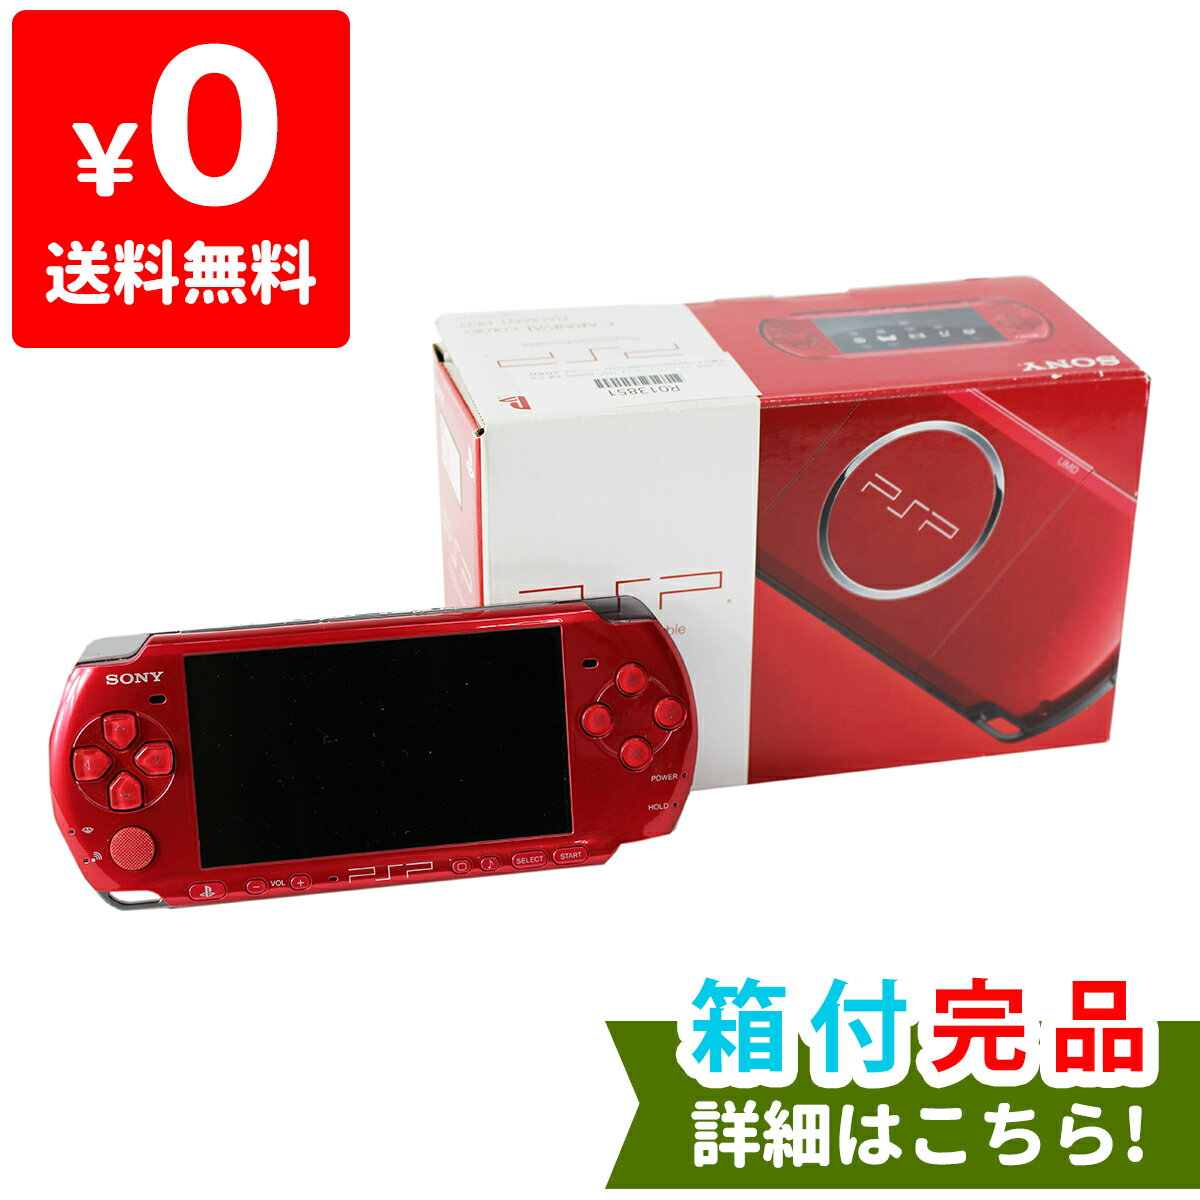 PSP 3000 ラディアント・レッド (PSP-3000RR) 本体 完品 外箱付き PlayStationPortable SONY ソニー 中古 4948872412131 送料無料 【中古】